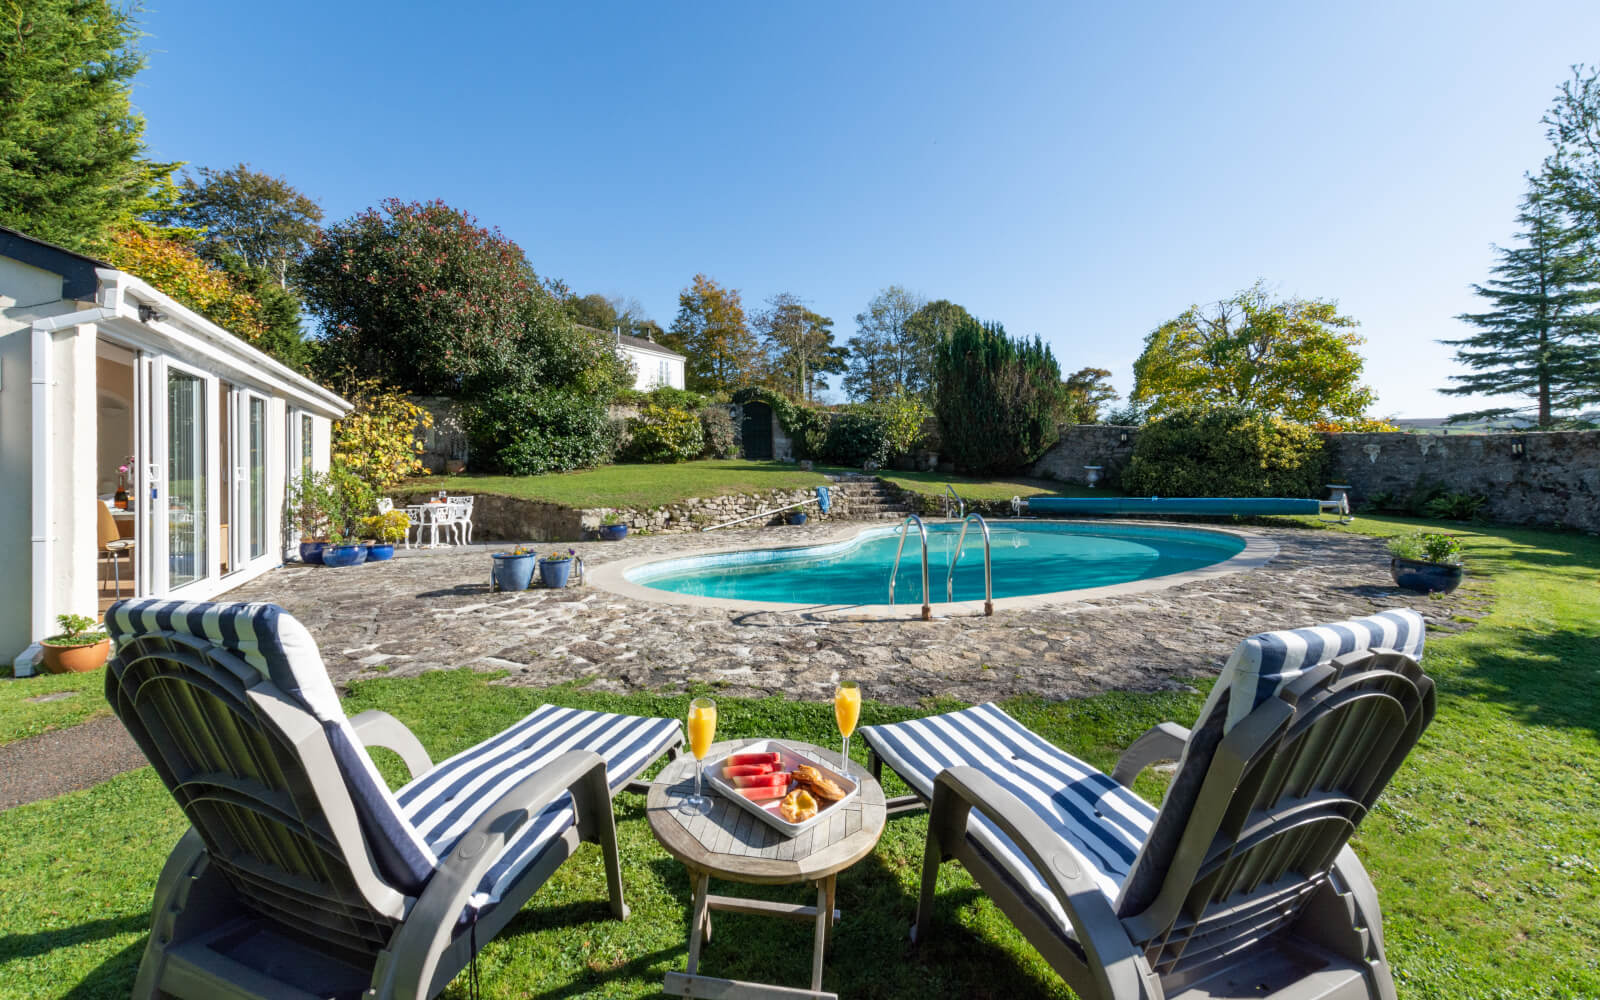 Swimming Pool Self Catering Holidays In West Sussex - Save up to 60%